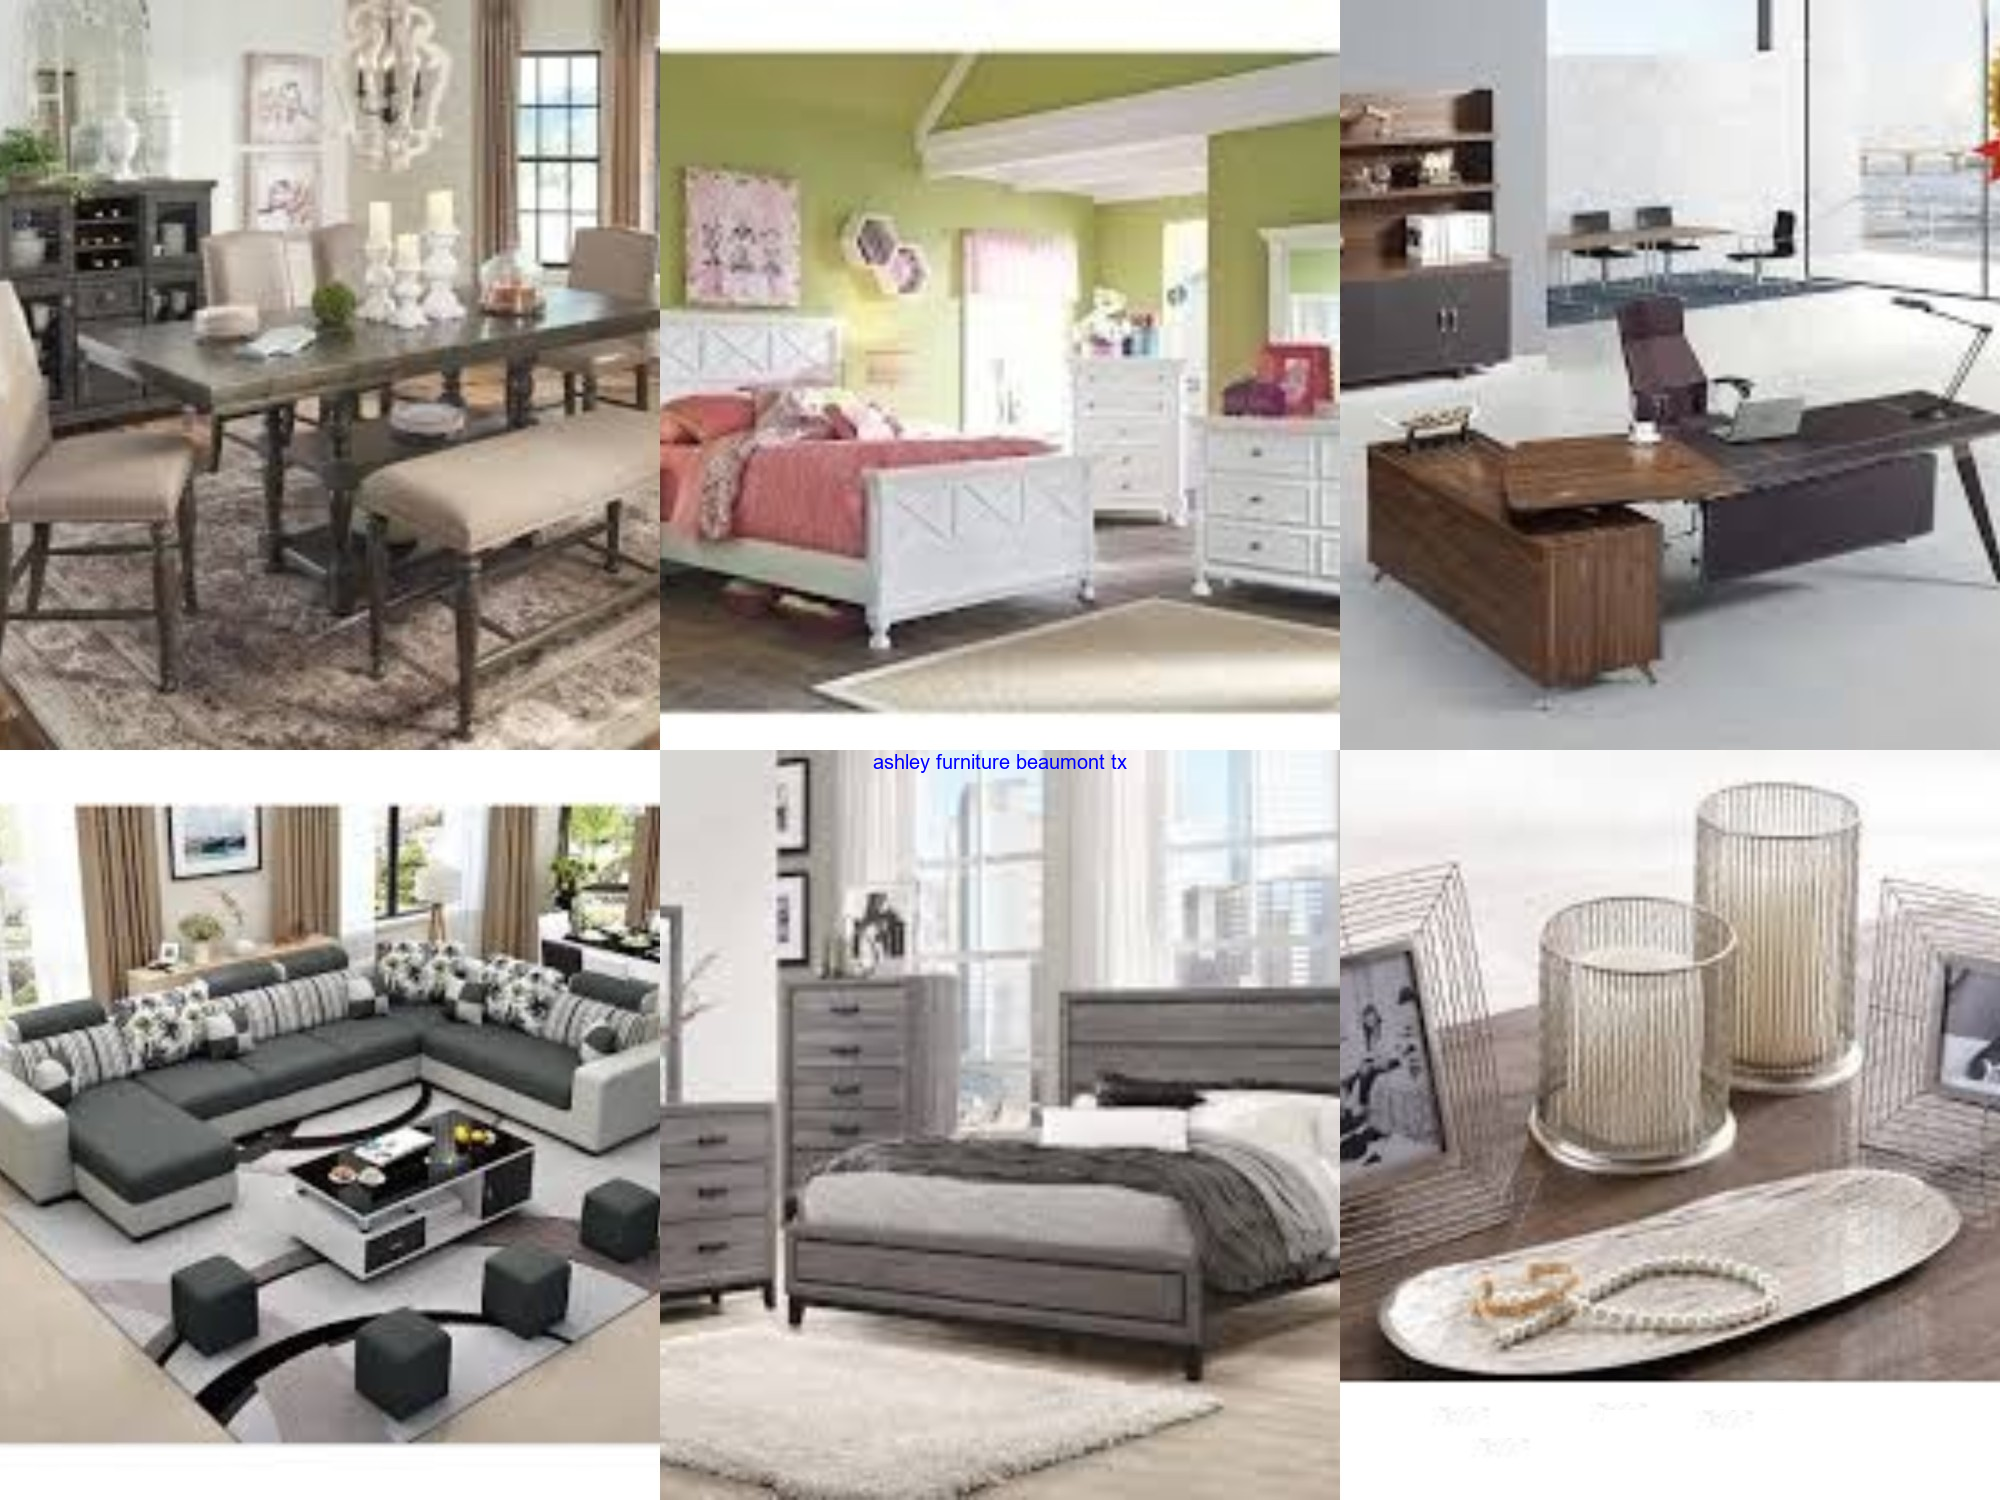 Ashley Furniture Beaumont Tx I